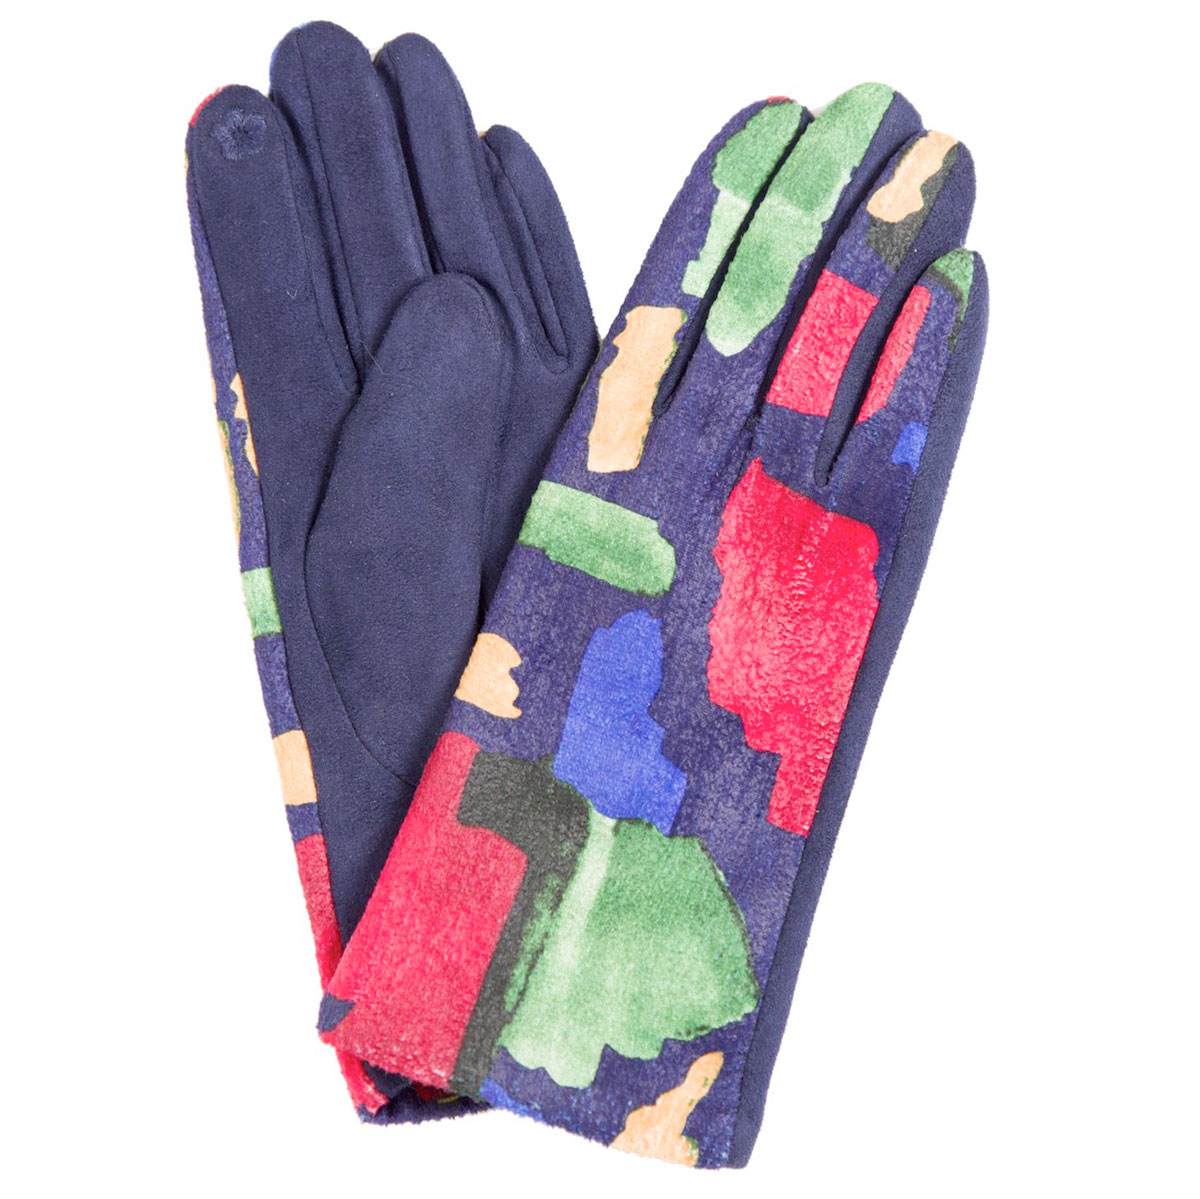 Touch Screen Smart Gloves - Fleece Lined  - 840-BL Sueded Abstract Design Smart Gloves (Blue Palms)*